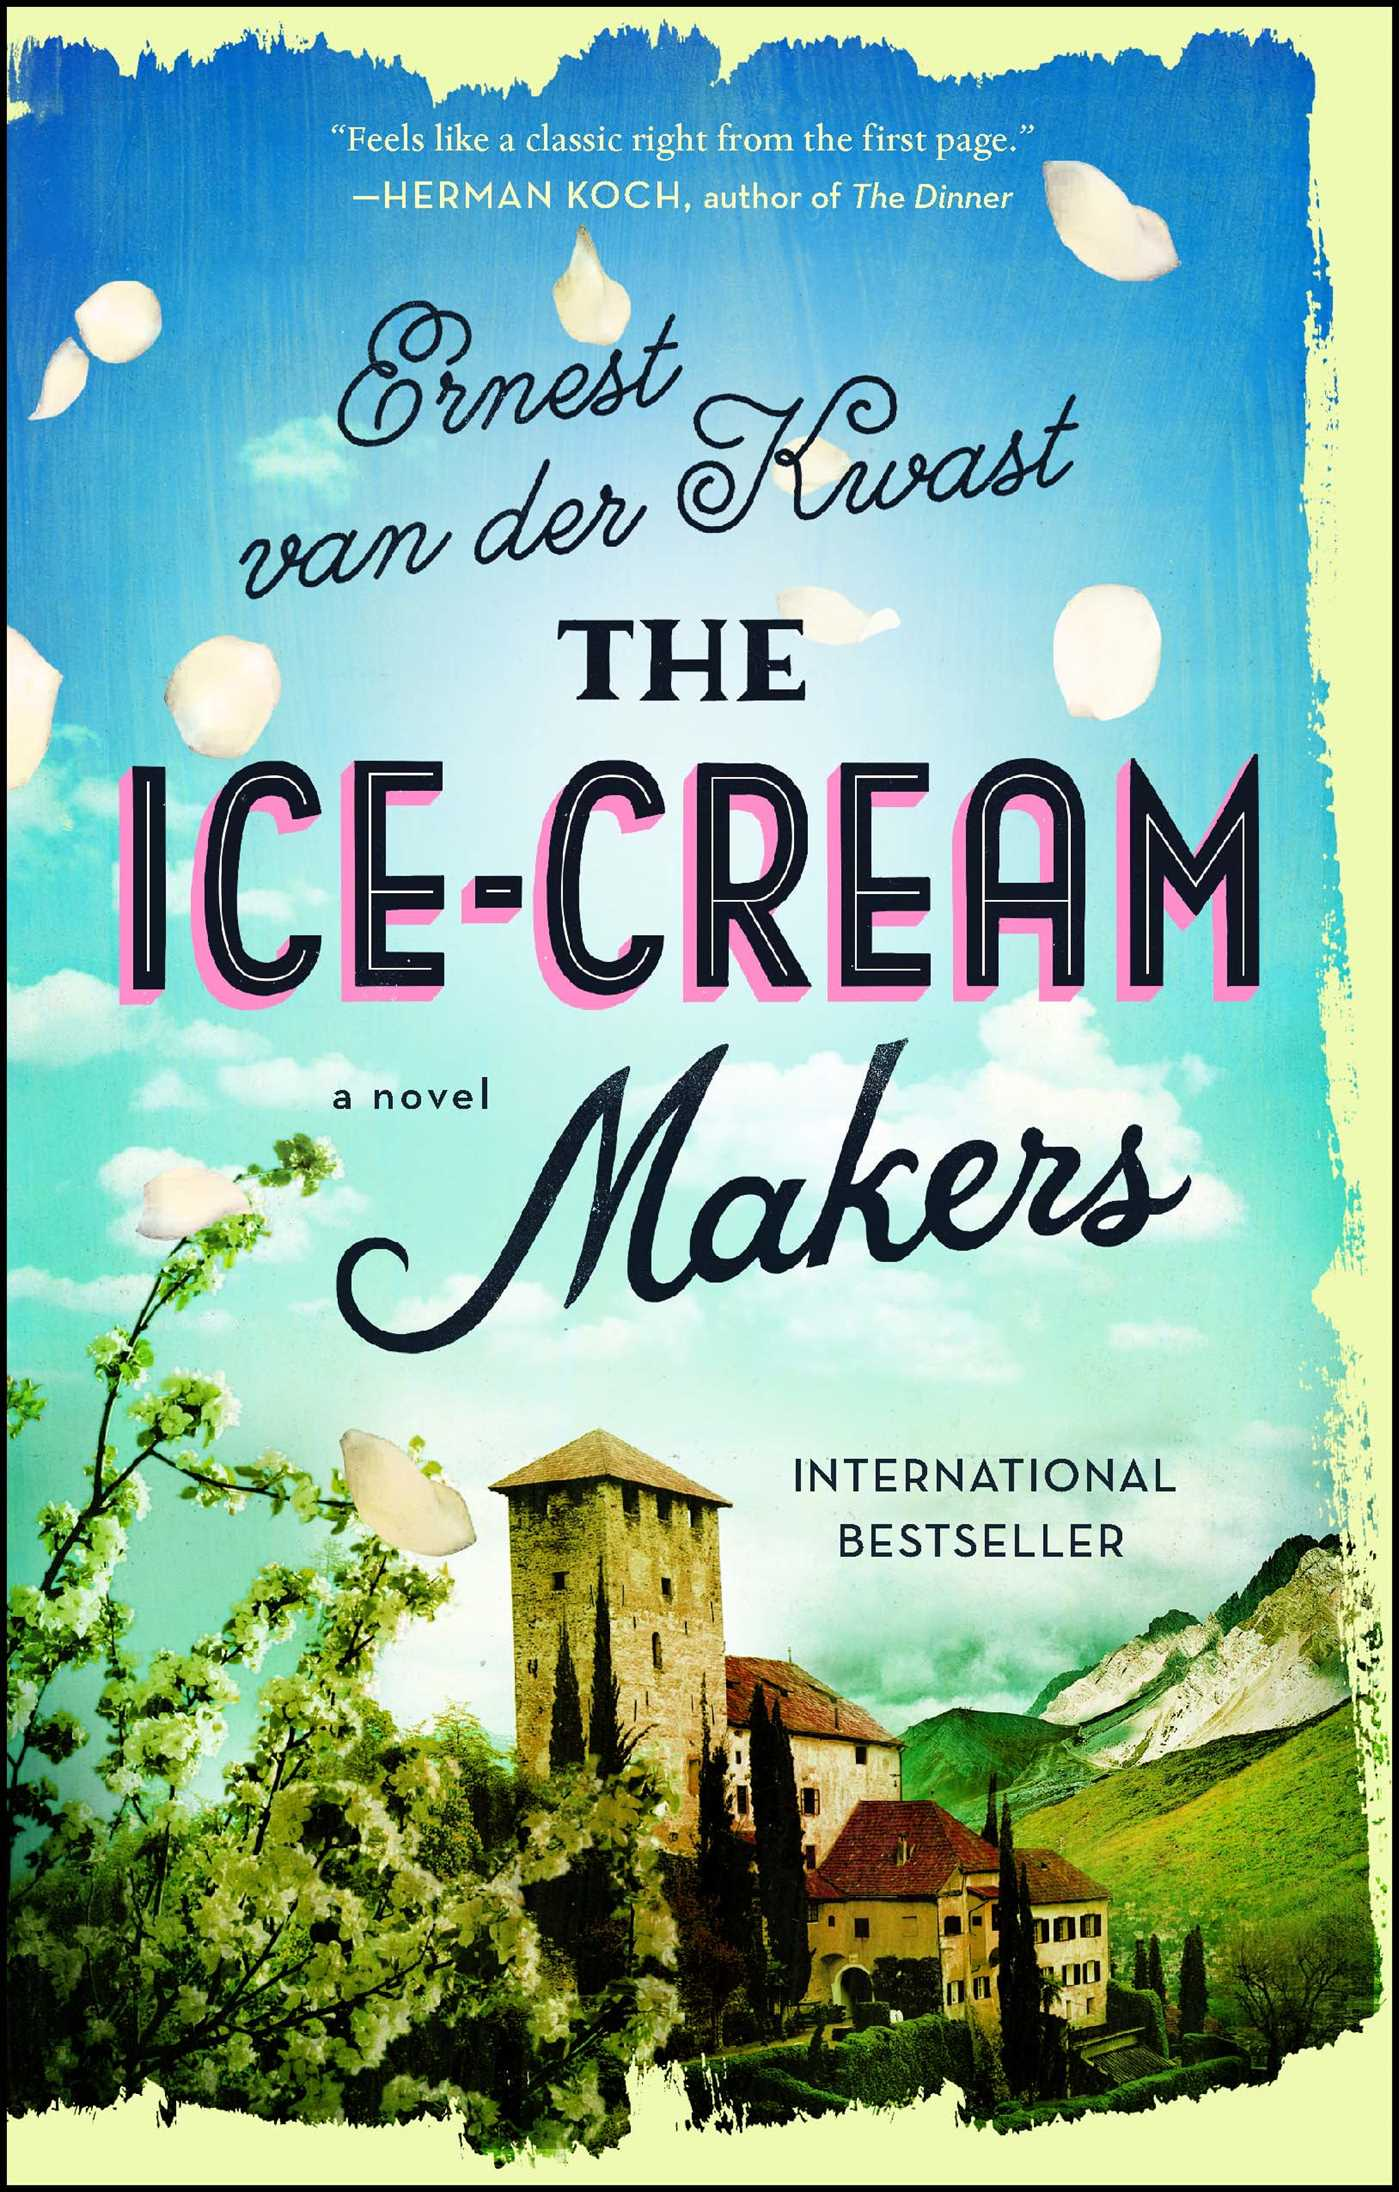 The Ice-Cream Makers